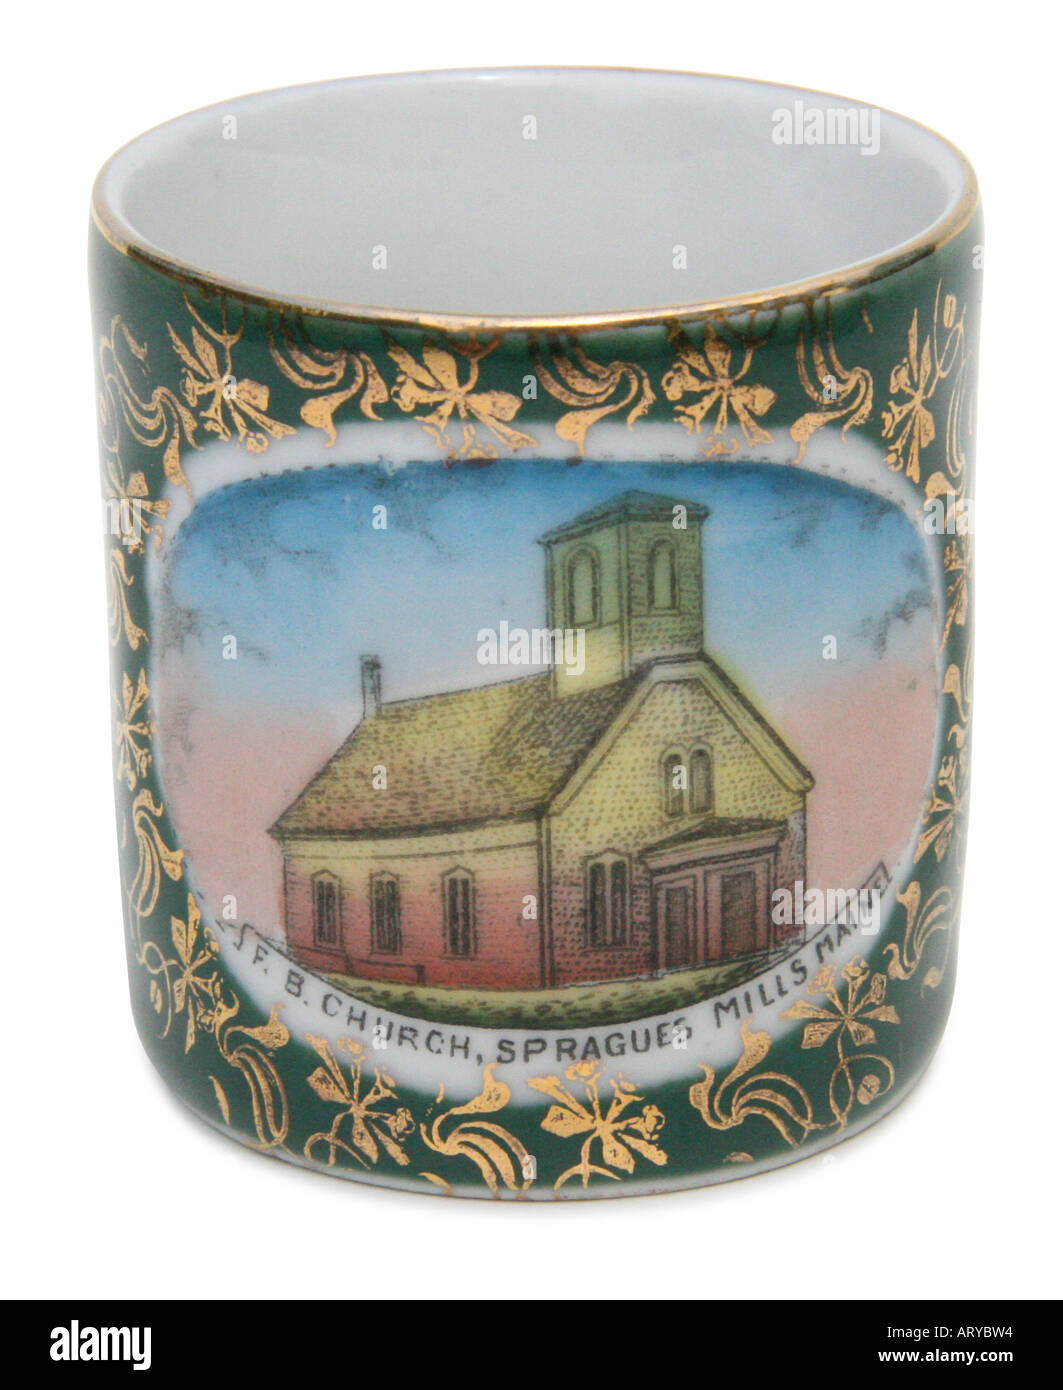 Circa 1890's souvenir china depicting the Free Baptist Church in Spragues Mills, Maine, USA. This image has a clipping path. - Stock Image